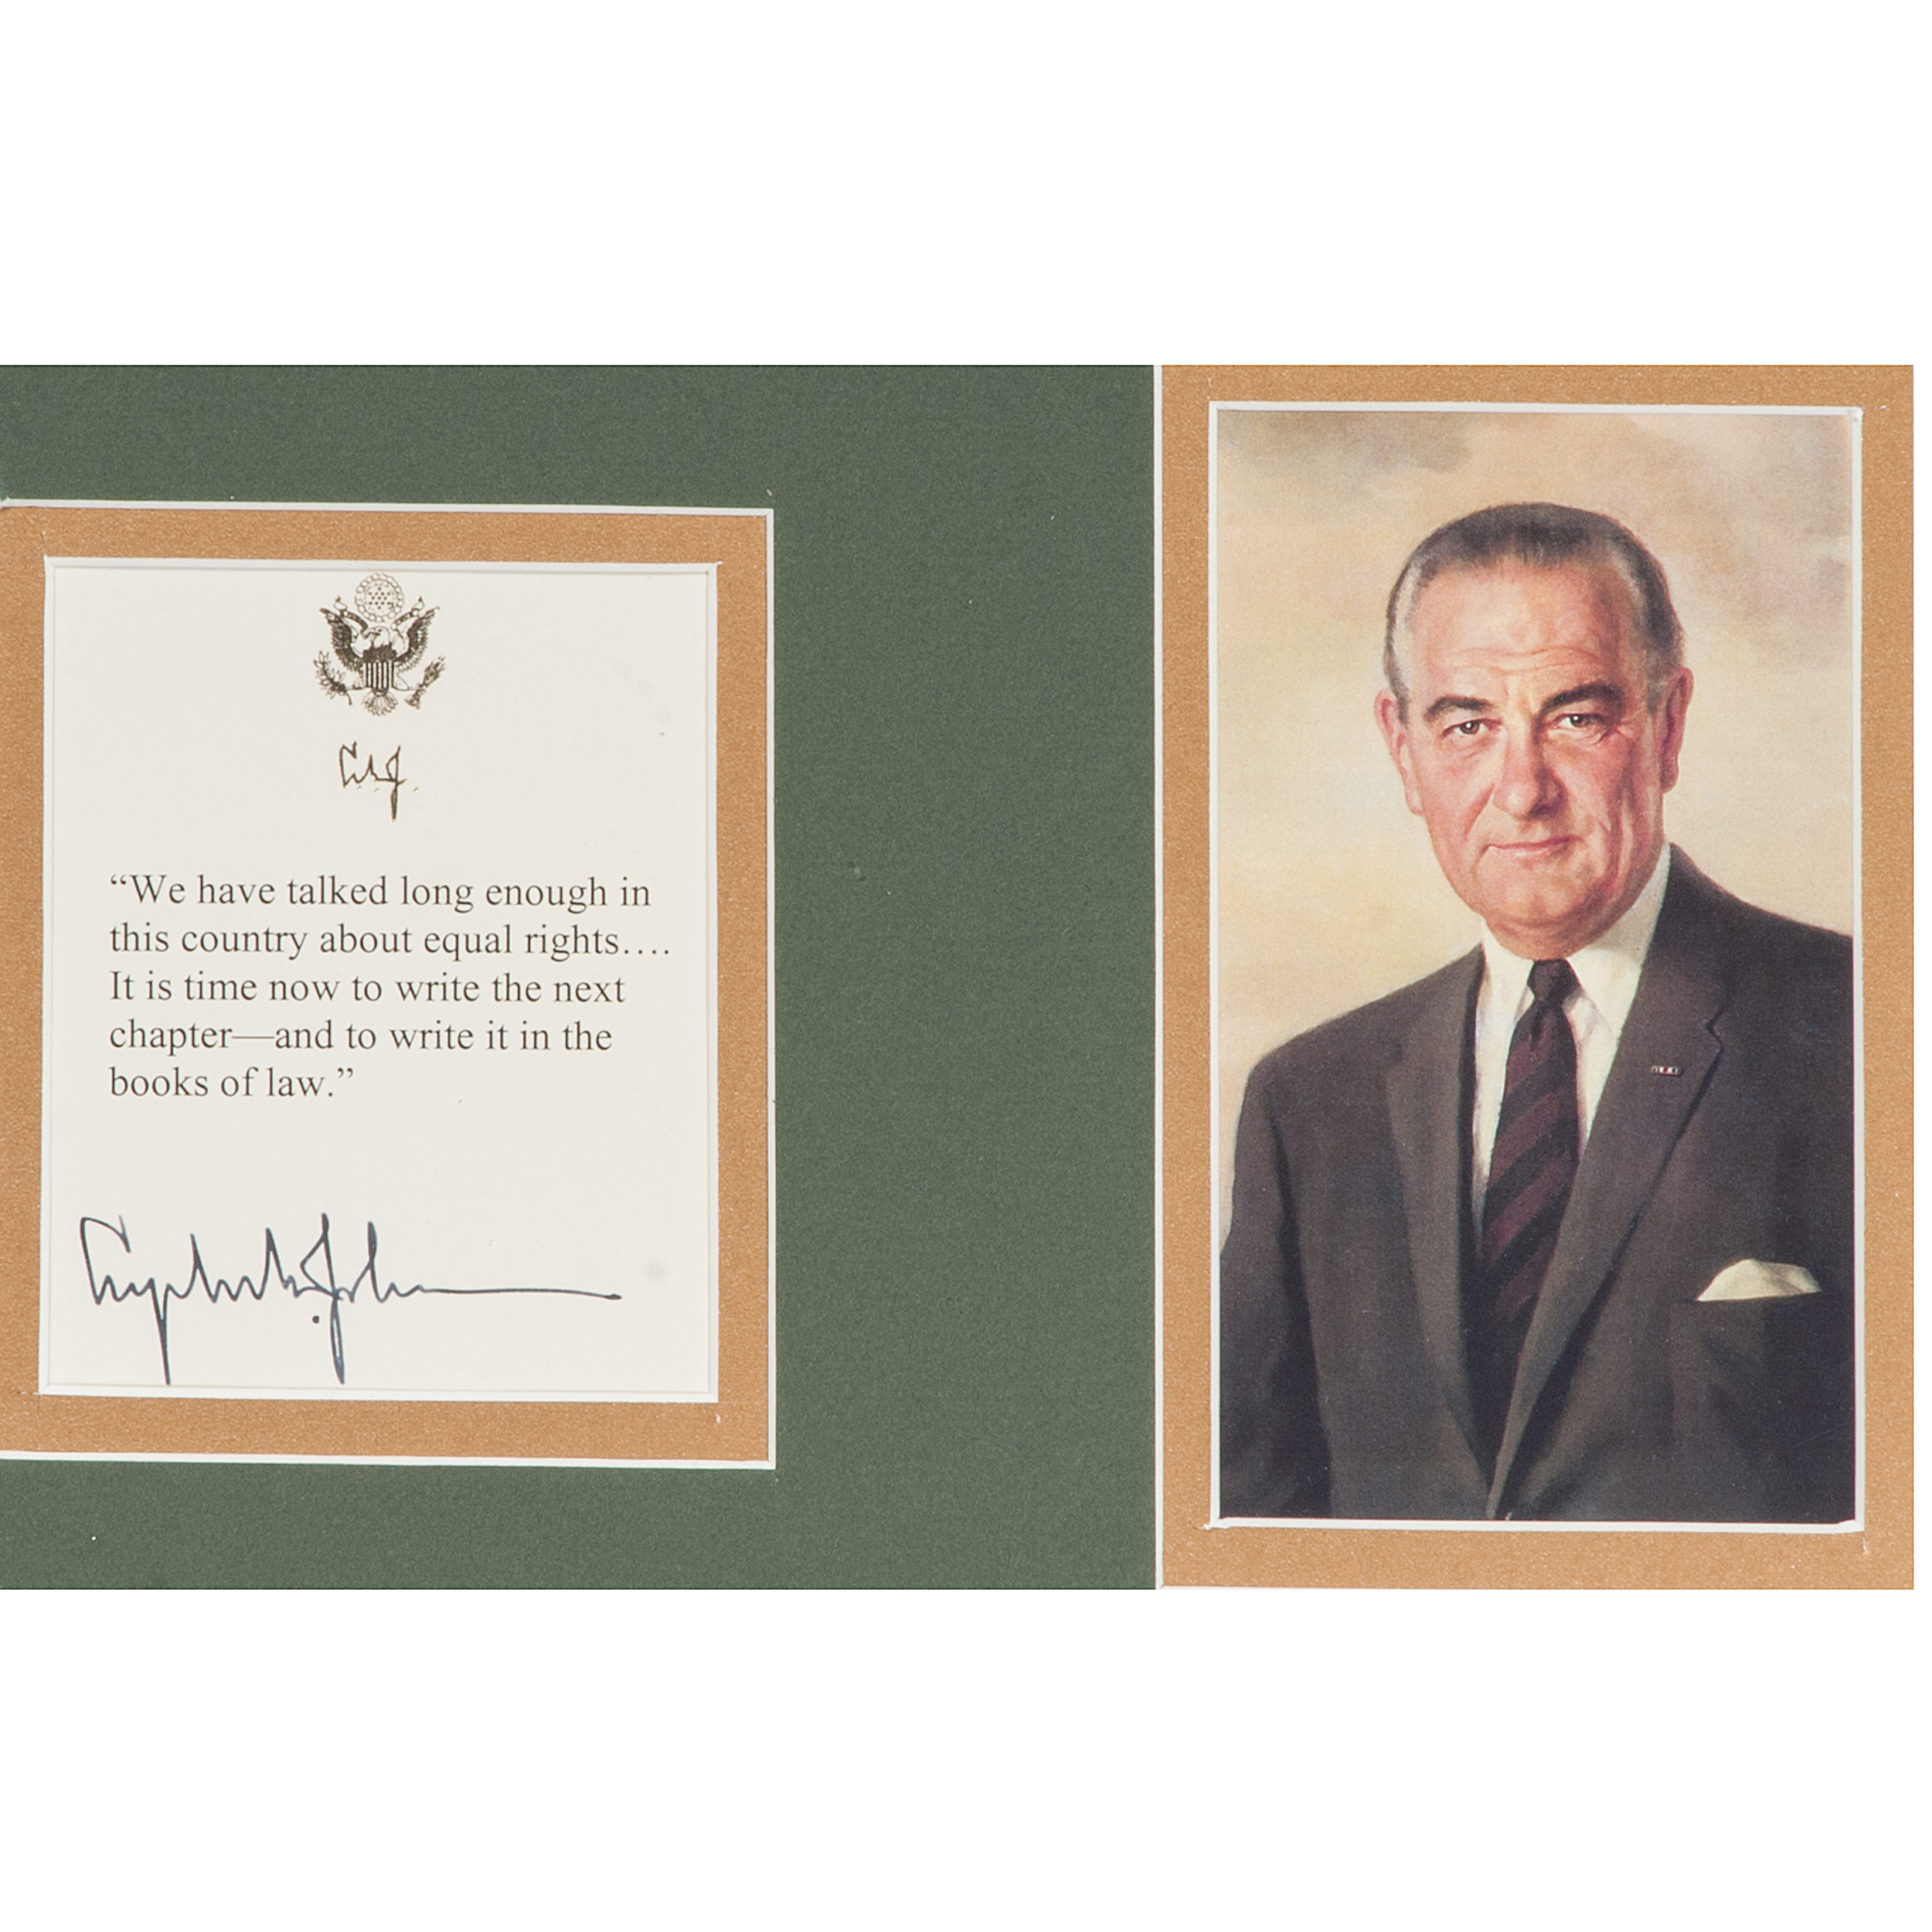 lyndon b johnson and equal rights